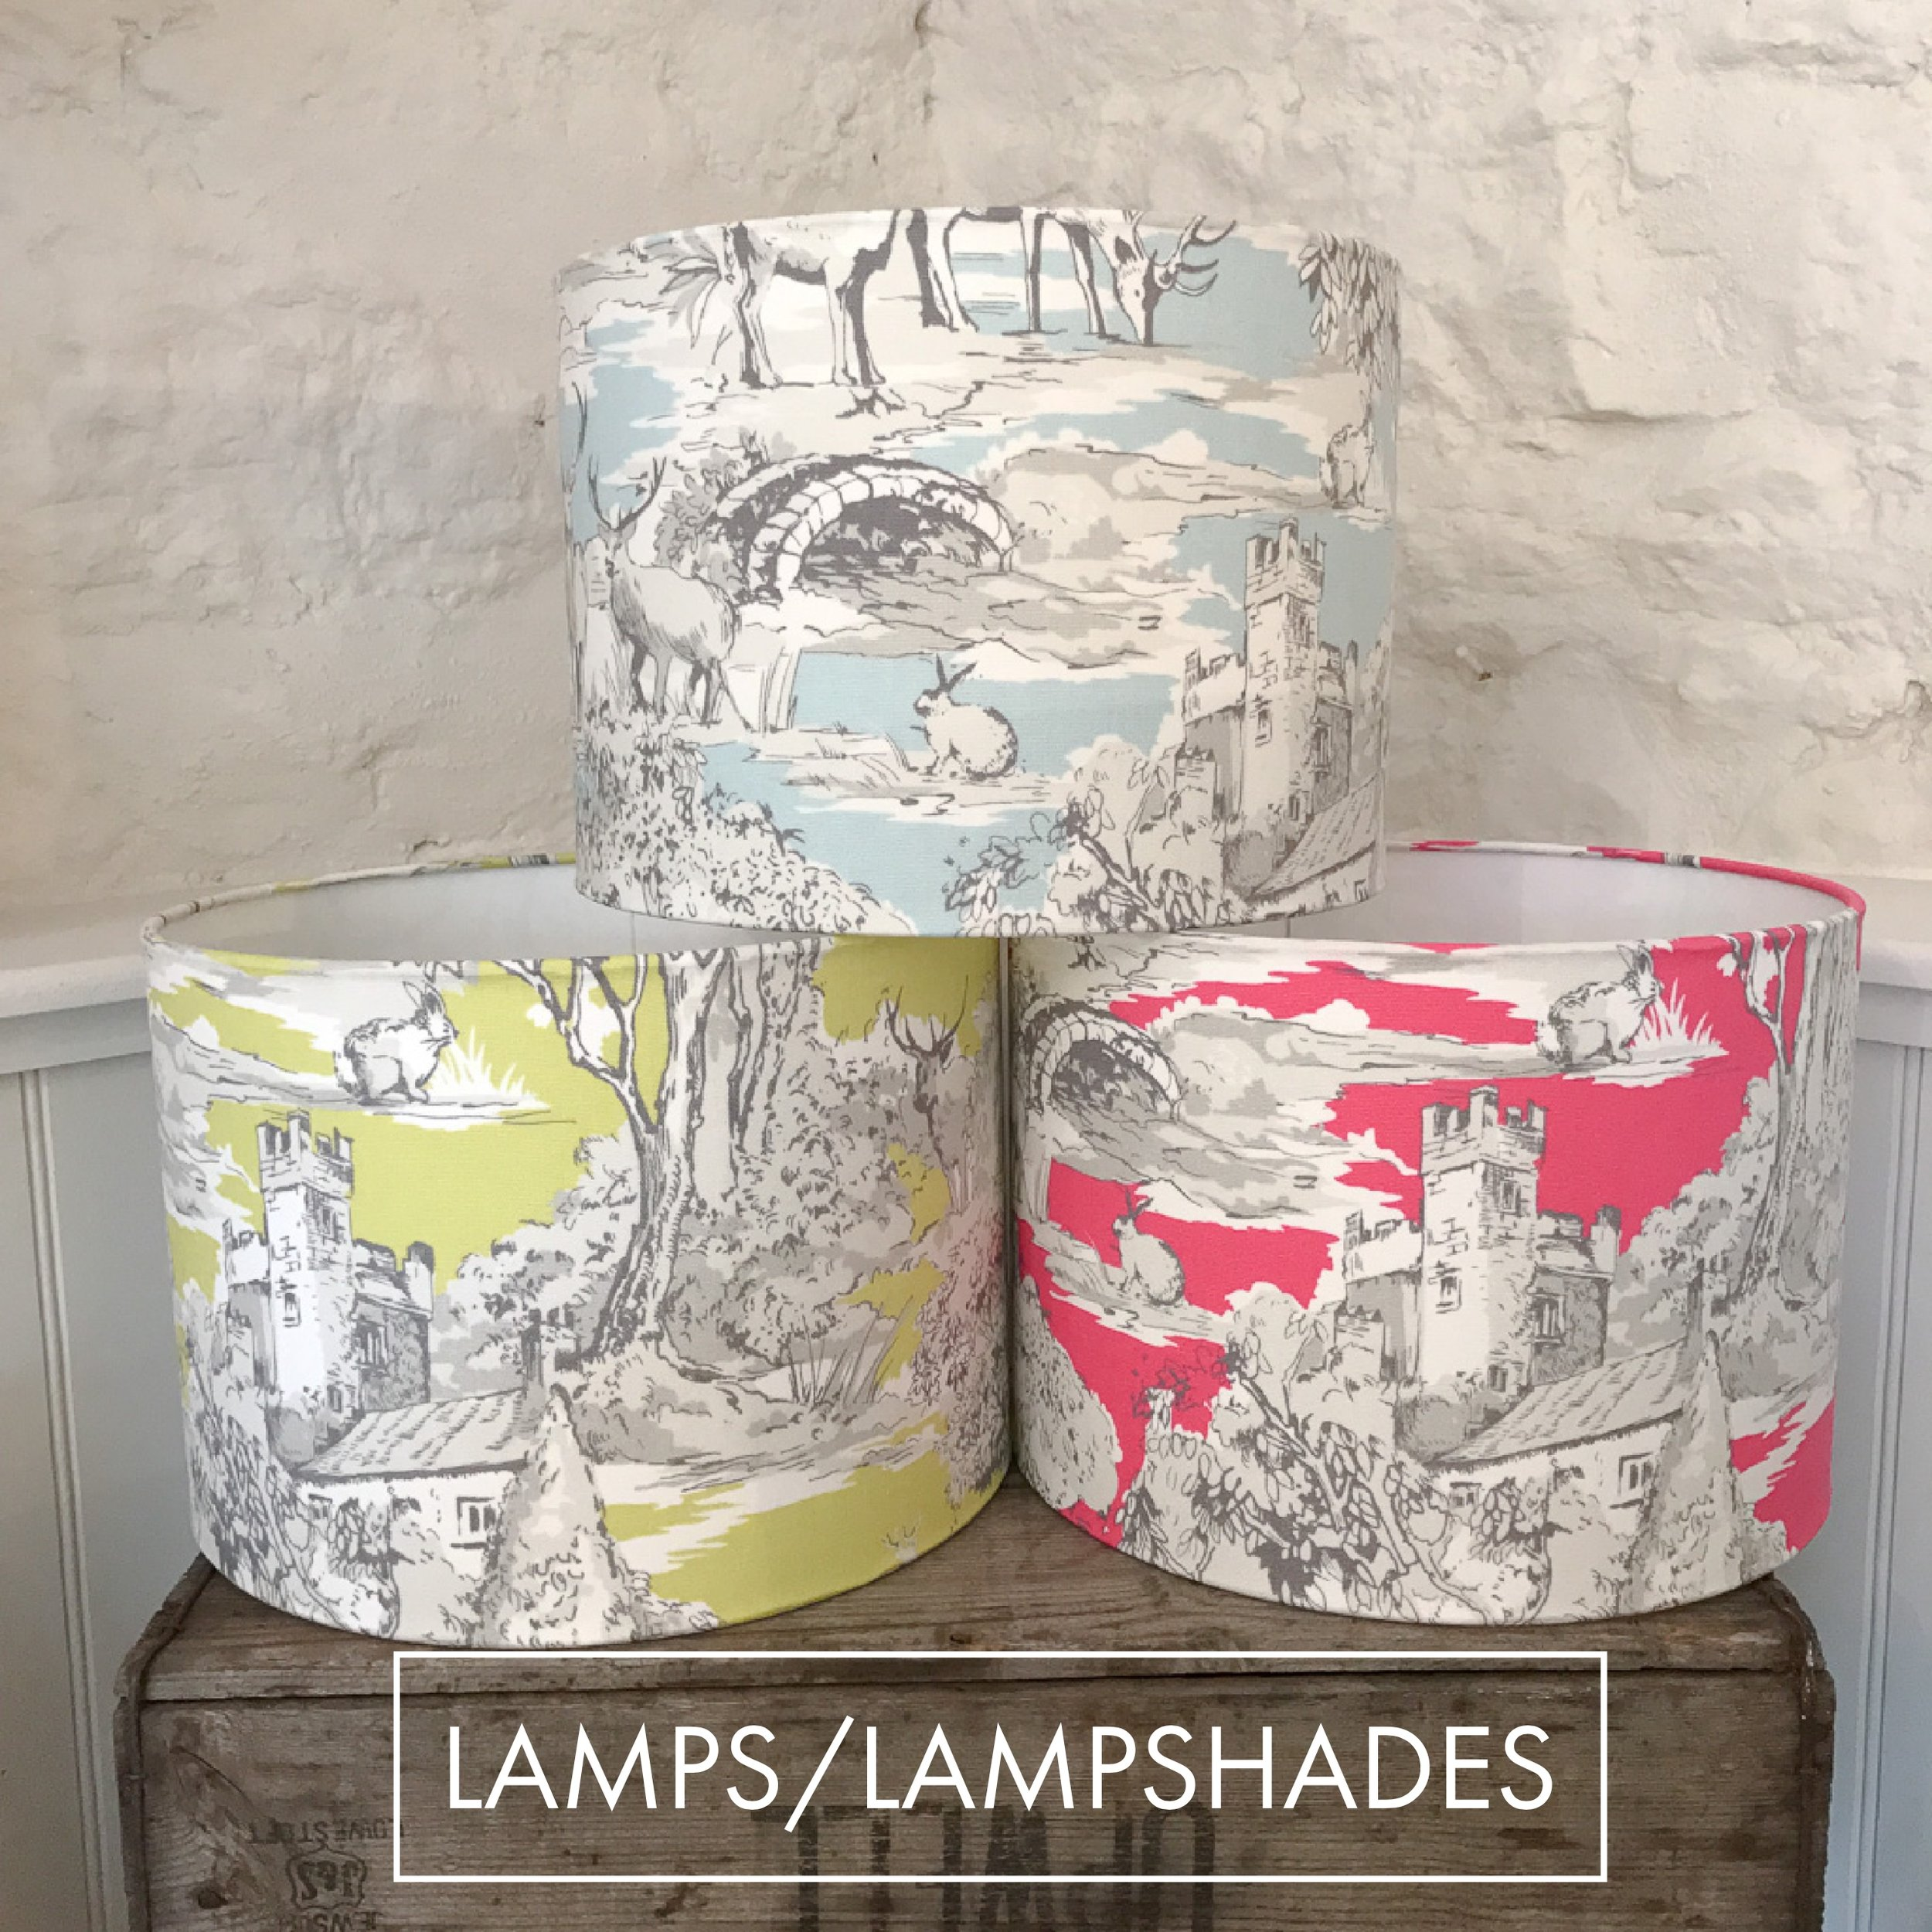 Category Lamps Lampshades.jpg